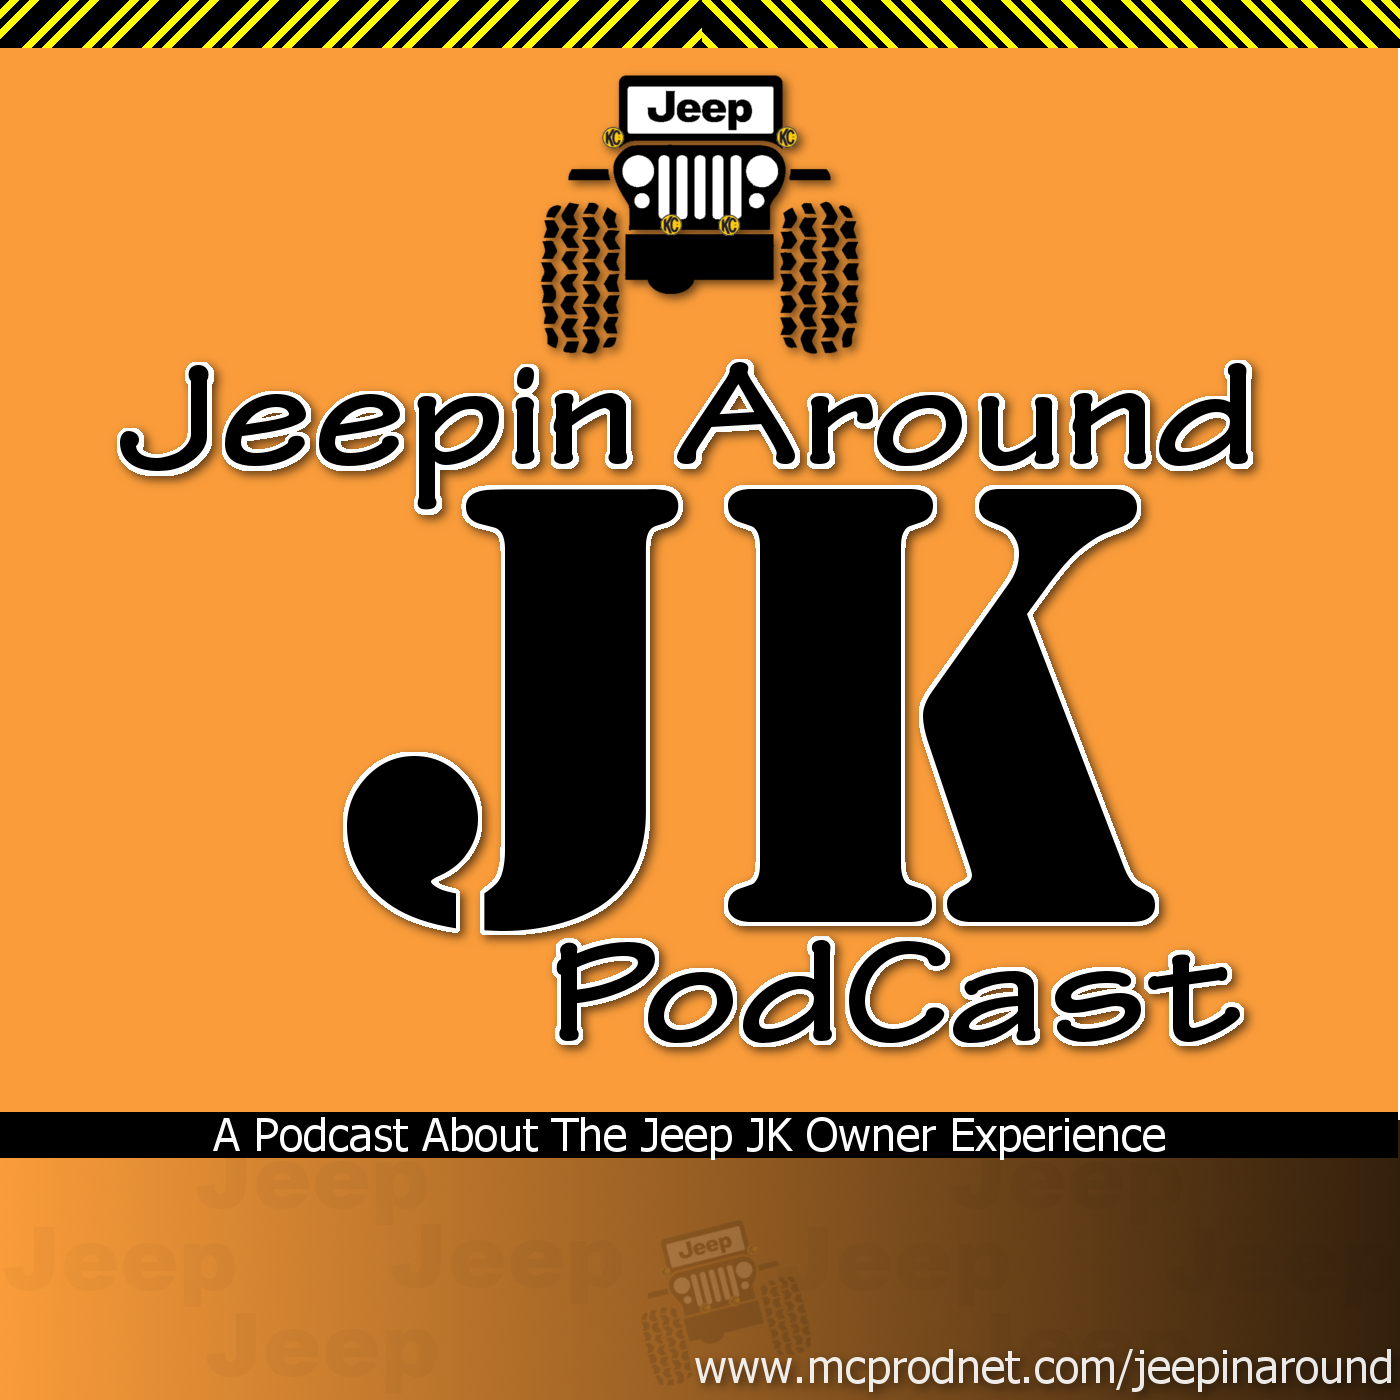 Jeepin Around PODCAST – MCPRODNET.COM